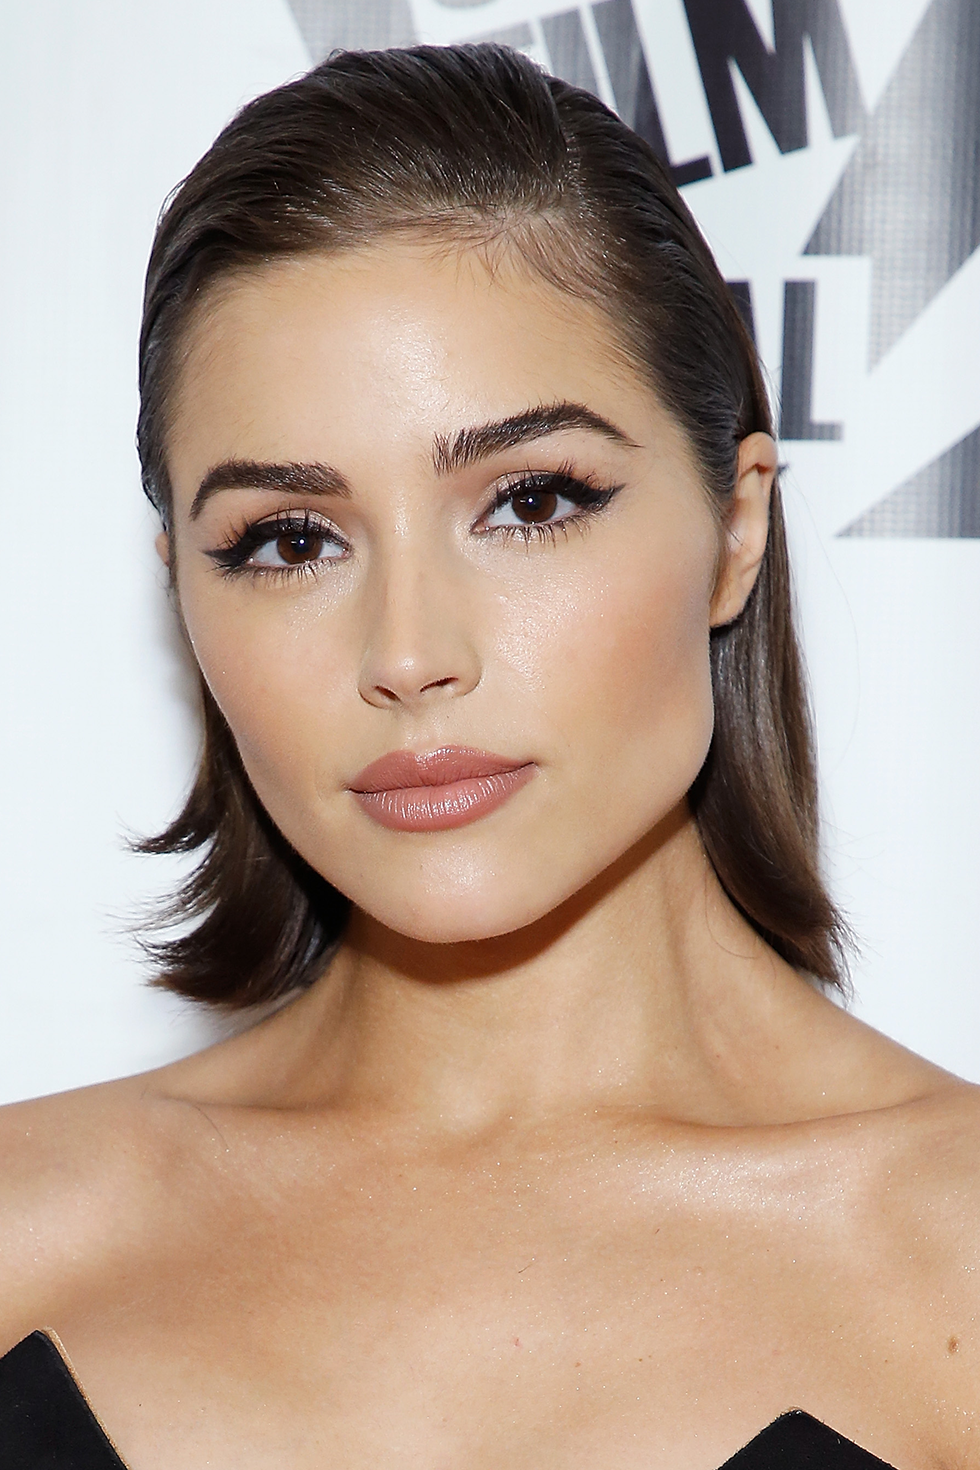 Olivia Culpo Life hack: When you don't feel like dealing with your hair, slick it back. Culpo added flair to her glossy lob with faintly flipped ends.